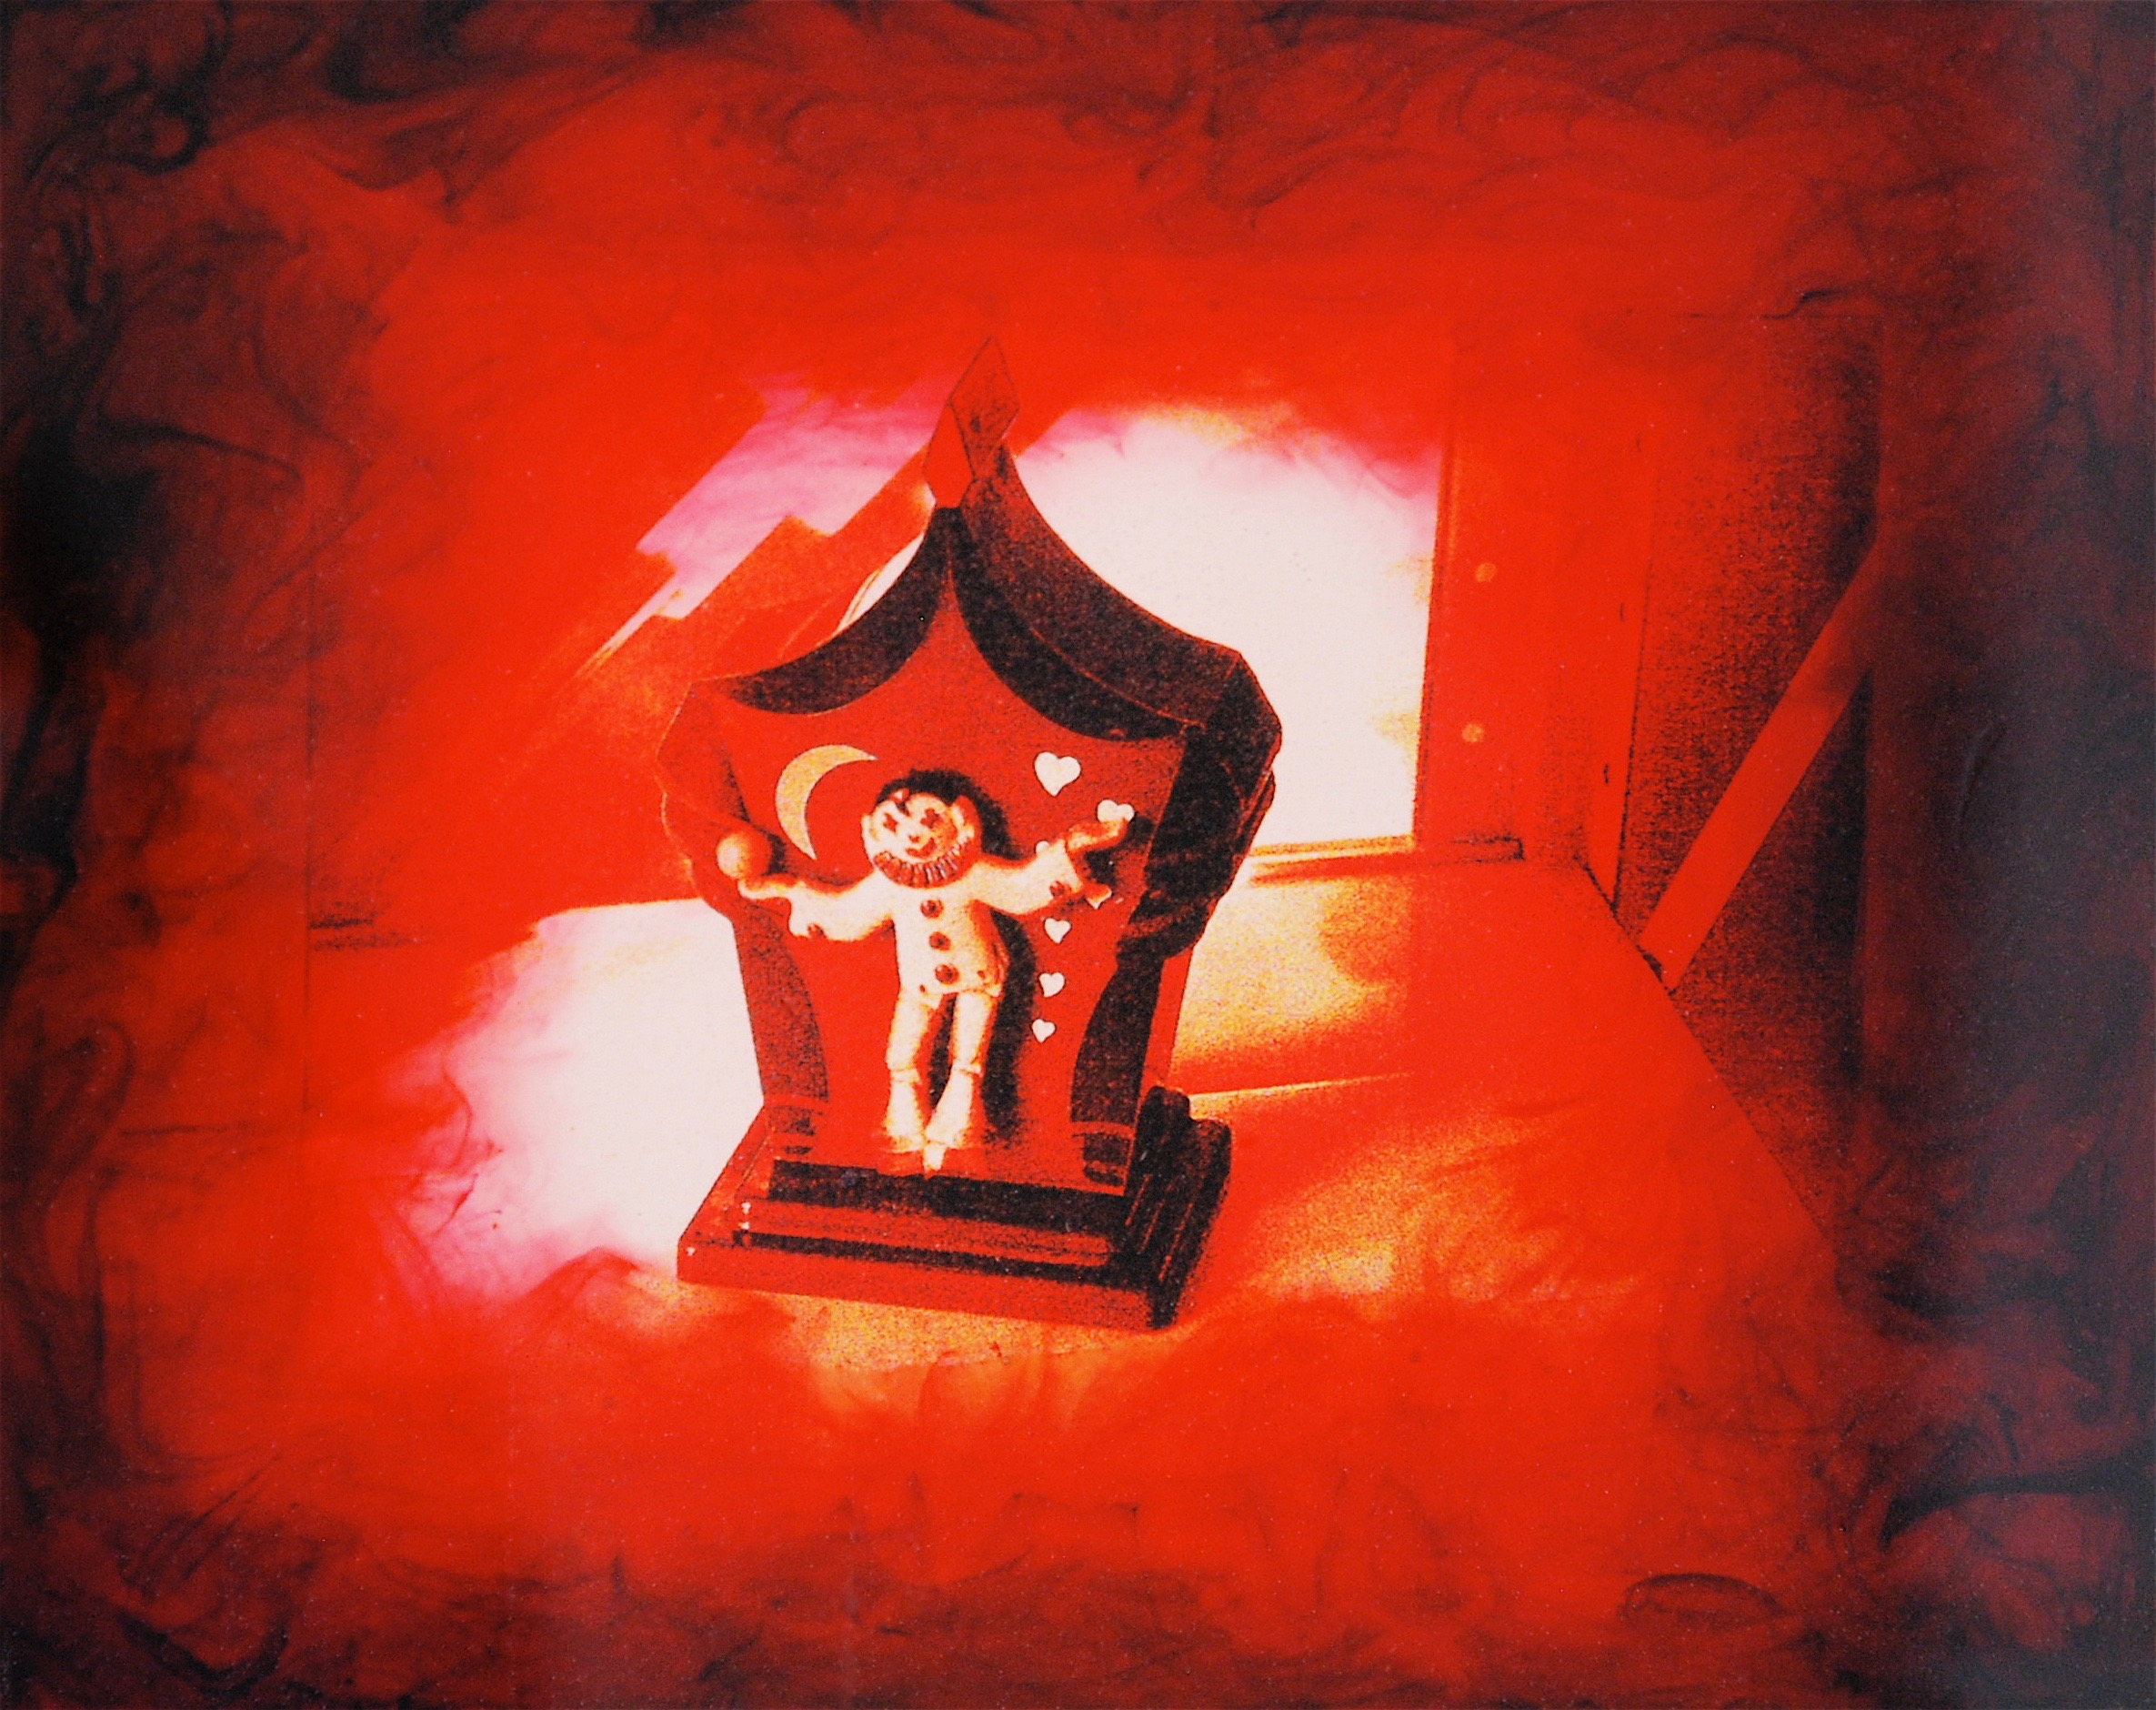 """Julia King - Red Clown (detail), 10""""h x 11 1/2""""w x 1 3/4""""d, photography based 3-d mixed media, resin, pigment, handmade wood frame"""